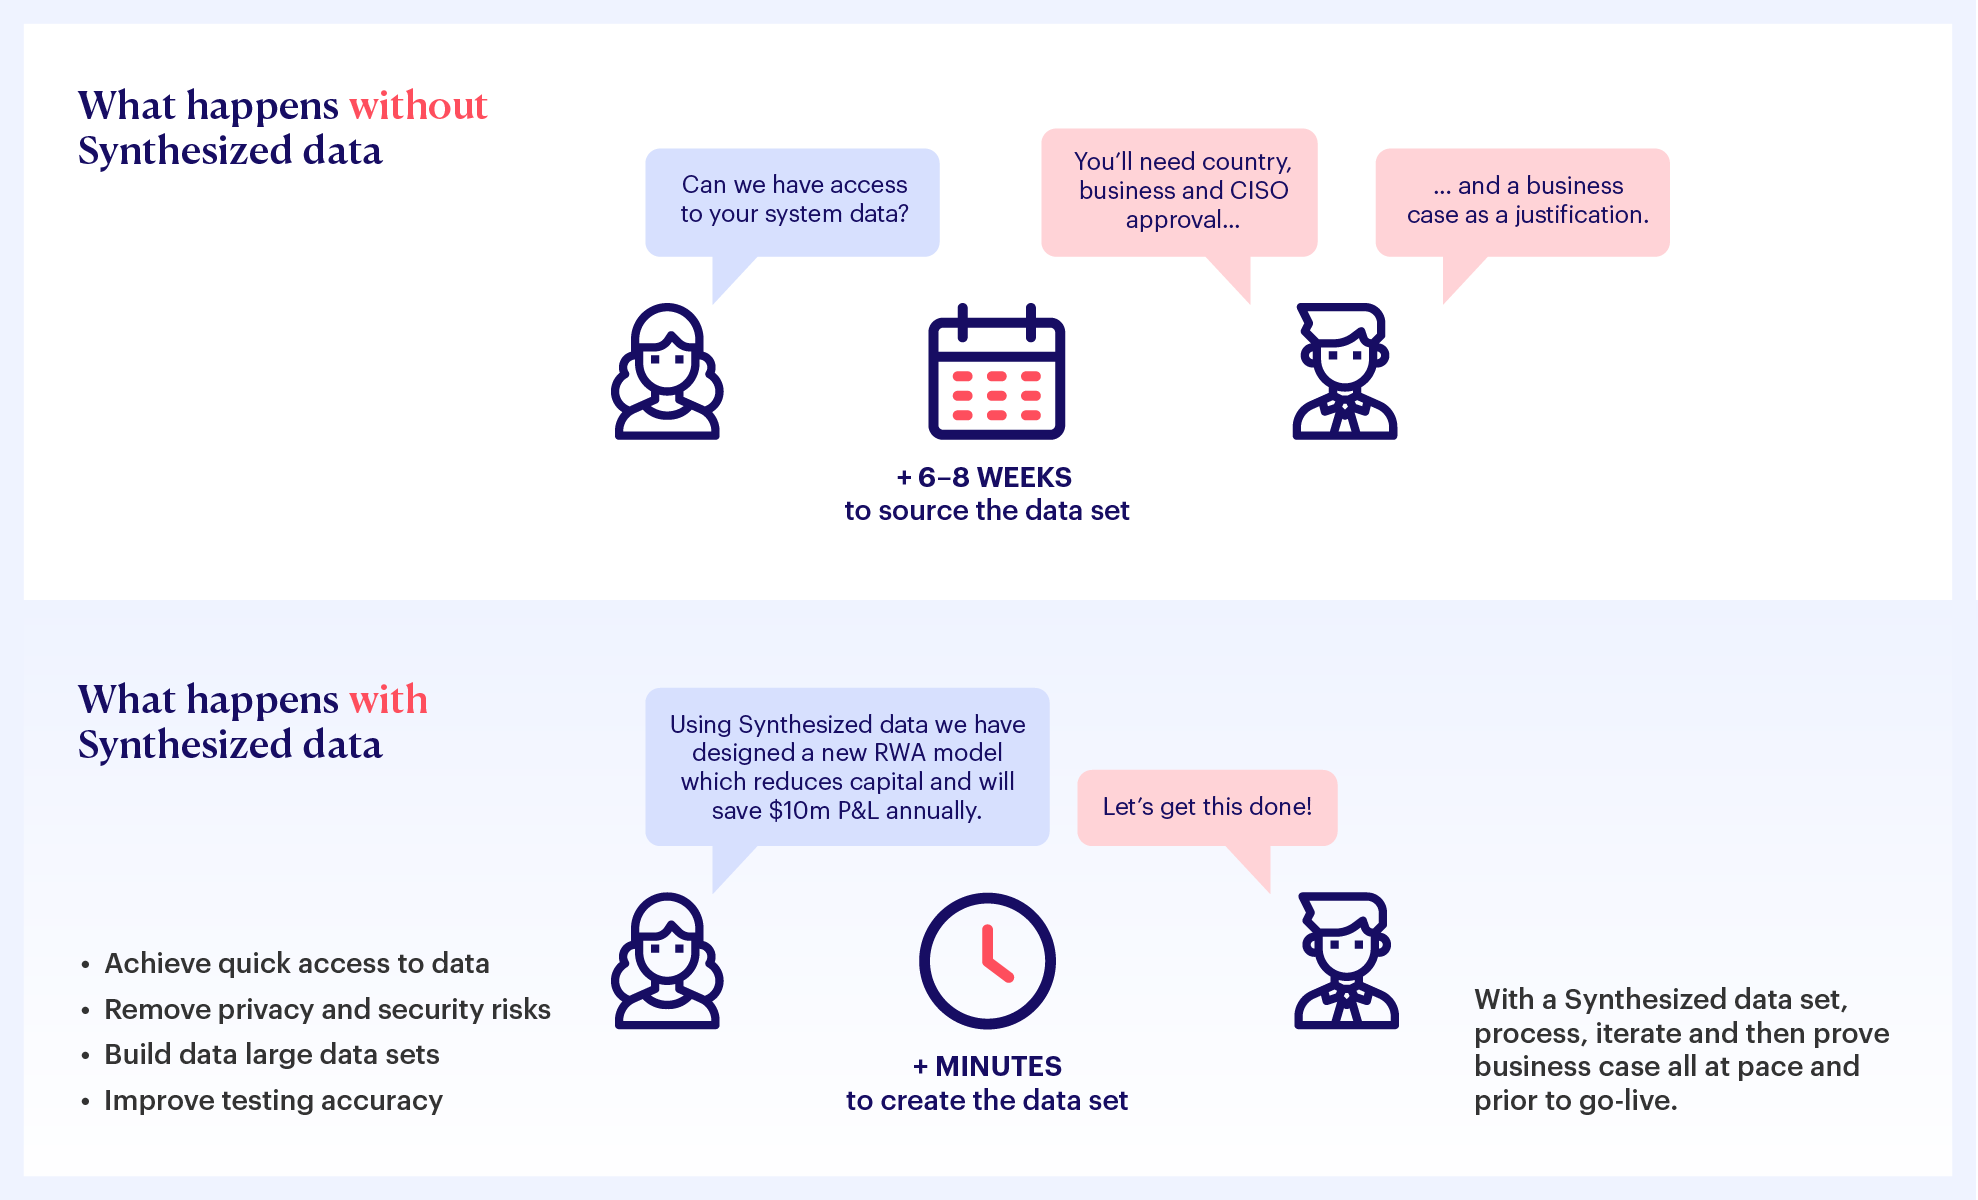 The Synthesized Data Platform enables real-time data delivery and curation for development and testing in minutes without compromising on privacy or regulatory compliance.